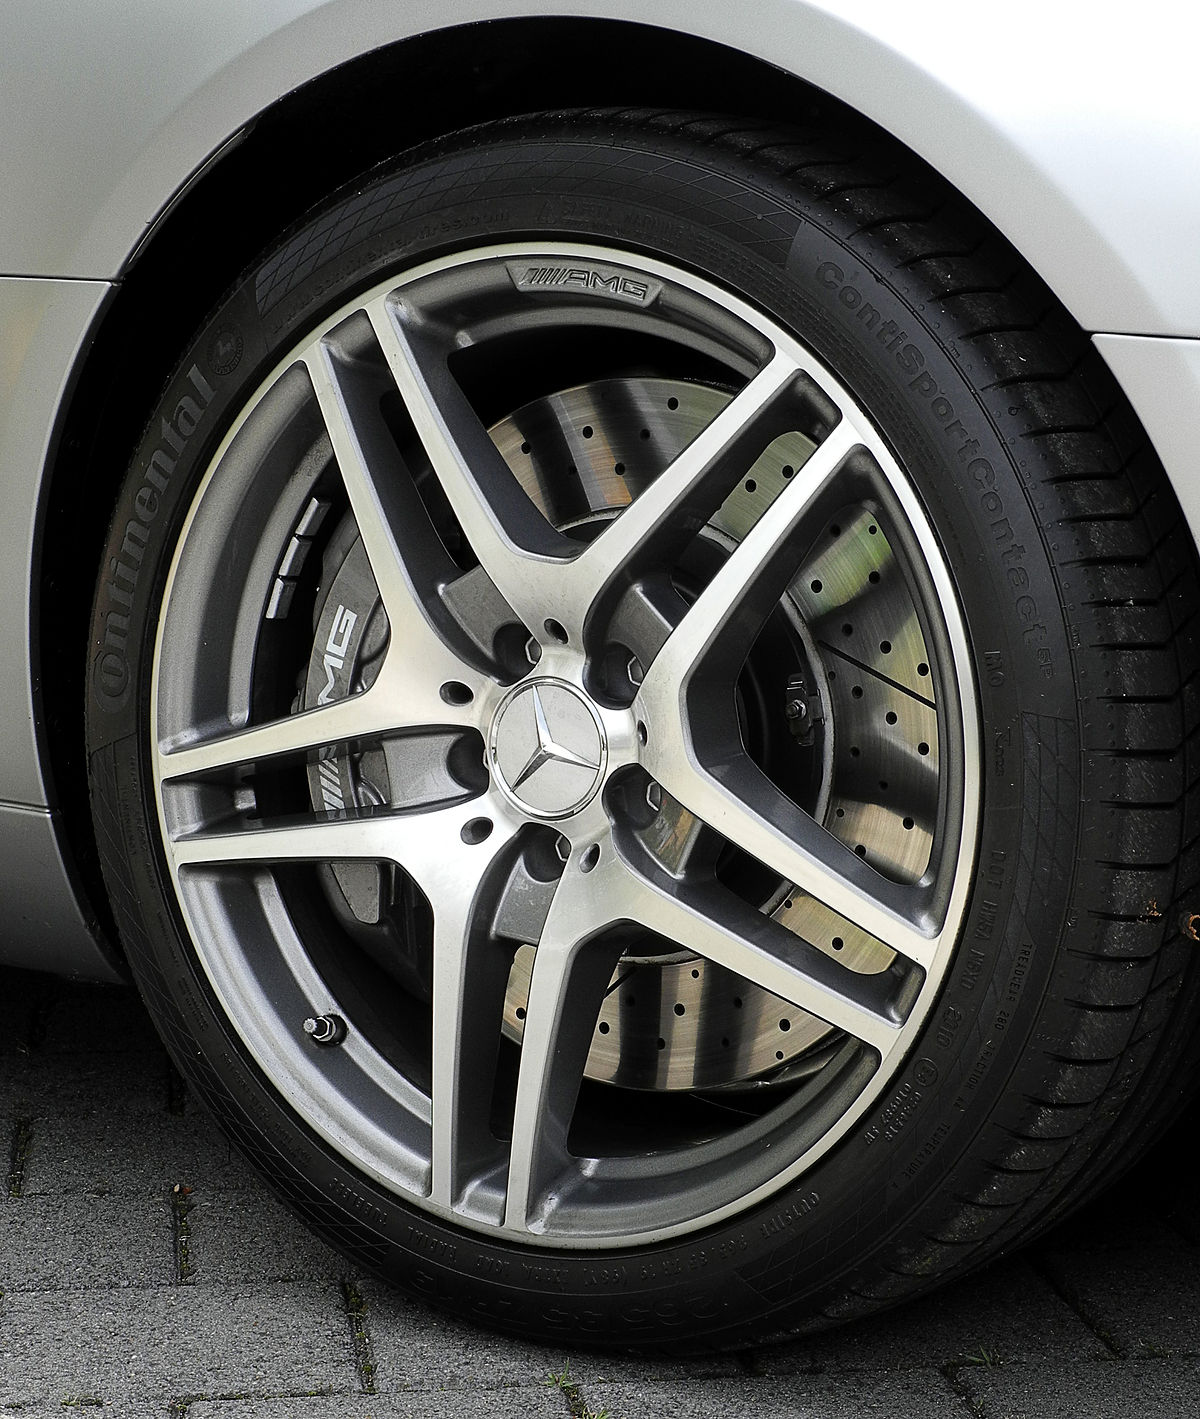 Continental ag wikipedia for Mercedes benz tyres